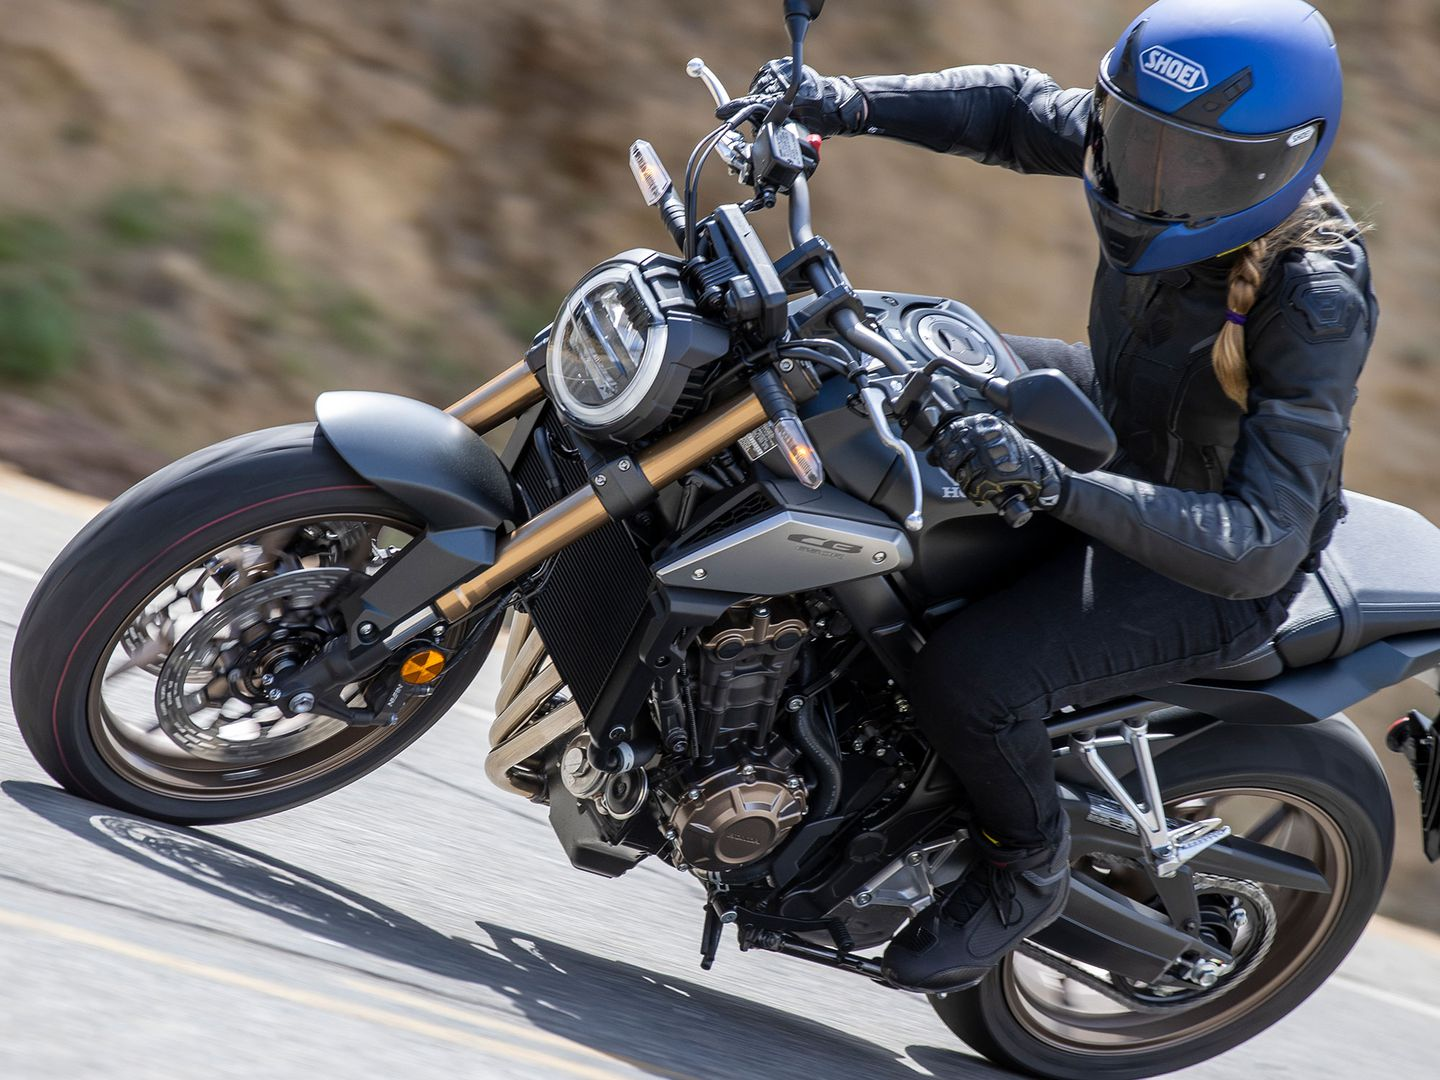 2021 Honda Cb650r Abs First Ride Review